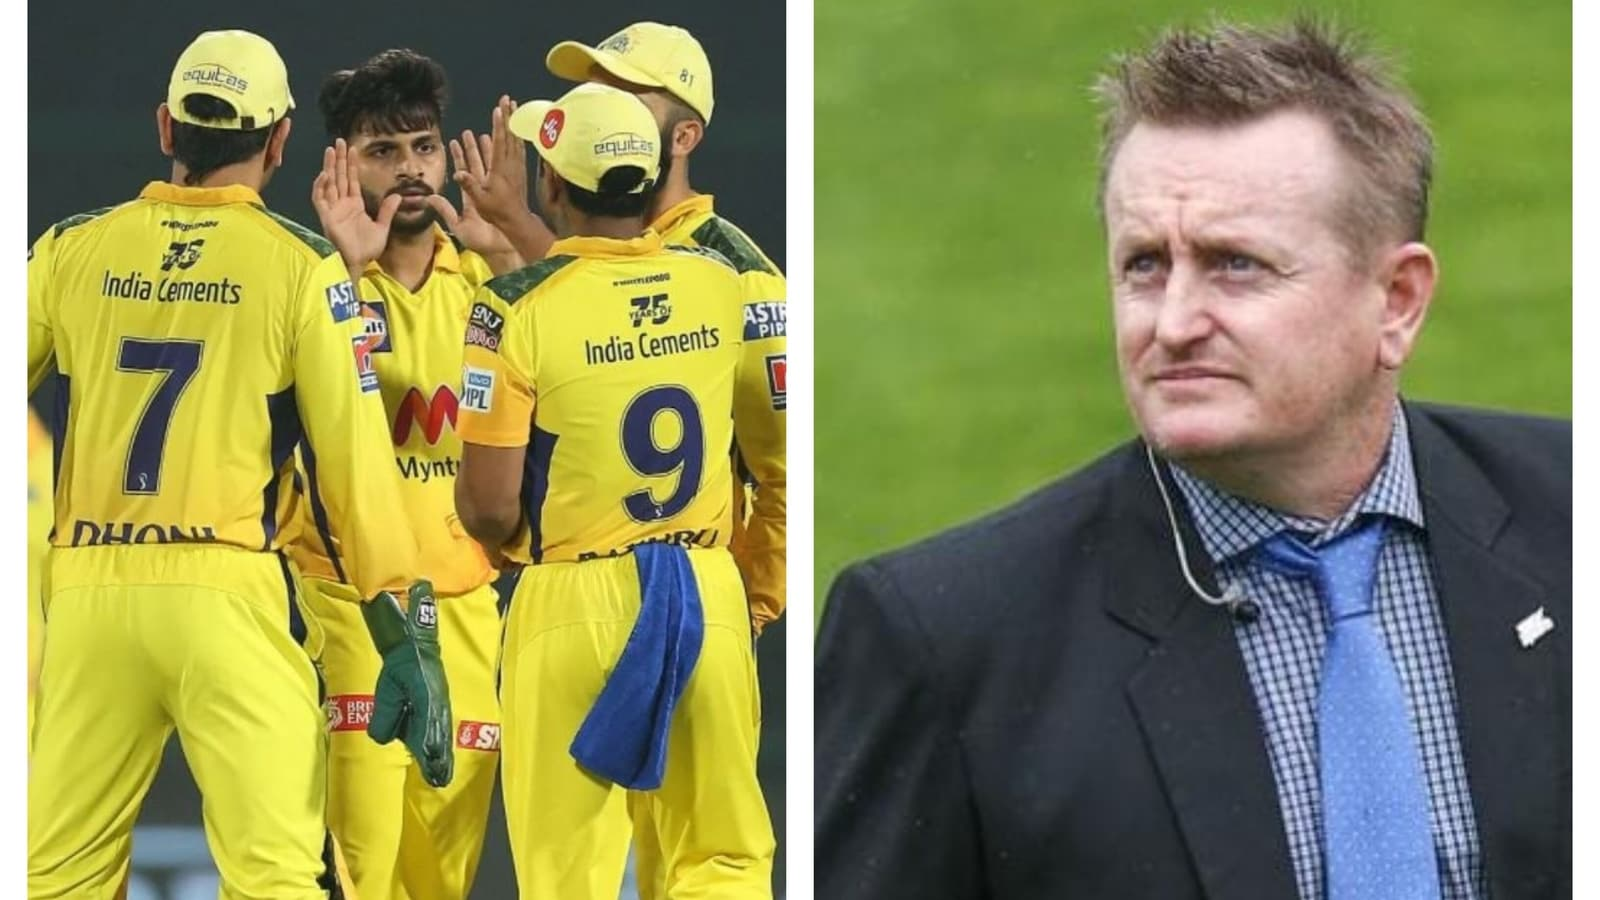 'I did not have a lot of confidence in them, to be perfectly honest': Scott Styris on CSK's resurgence in IPL 2021